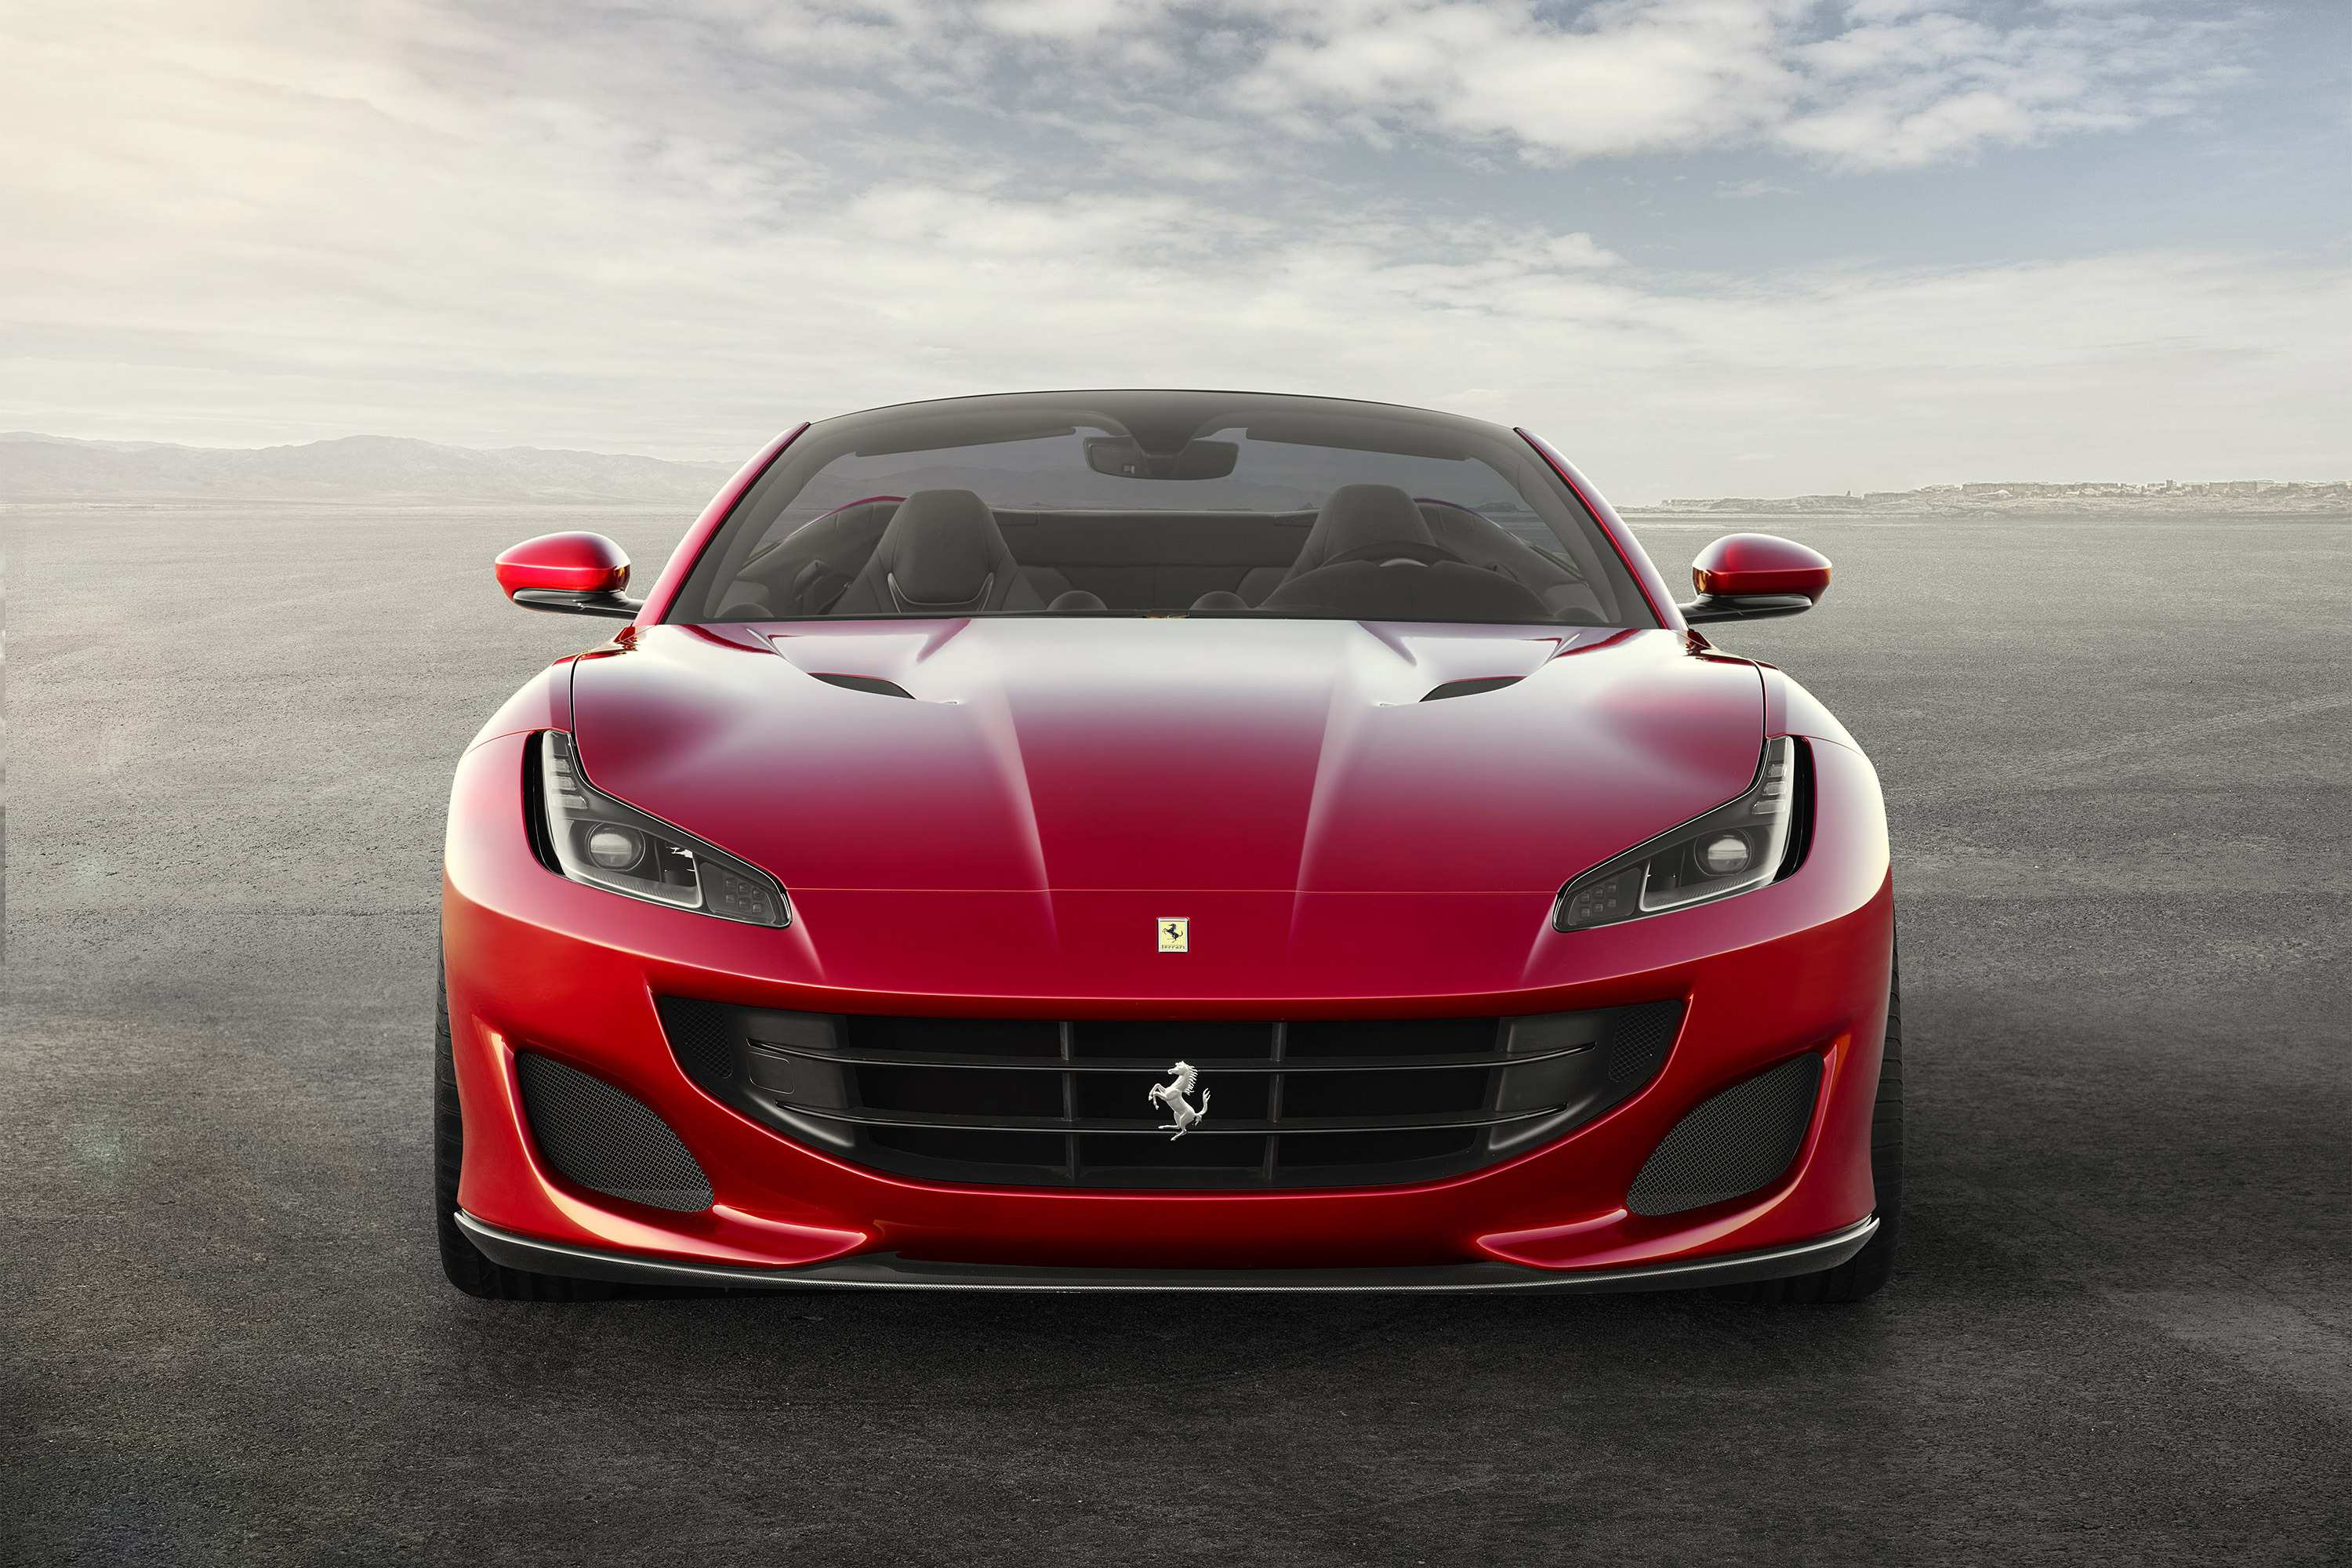 33 Best Review Best Ferrari Cars 2019 Redesign Concept with Best Ferrari Cars 2019 Redesign